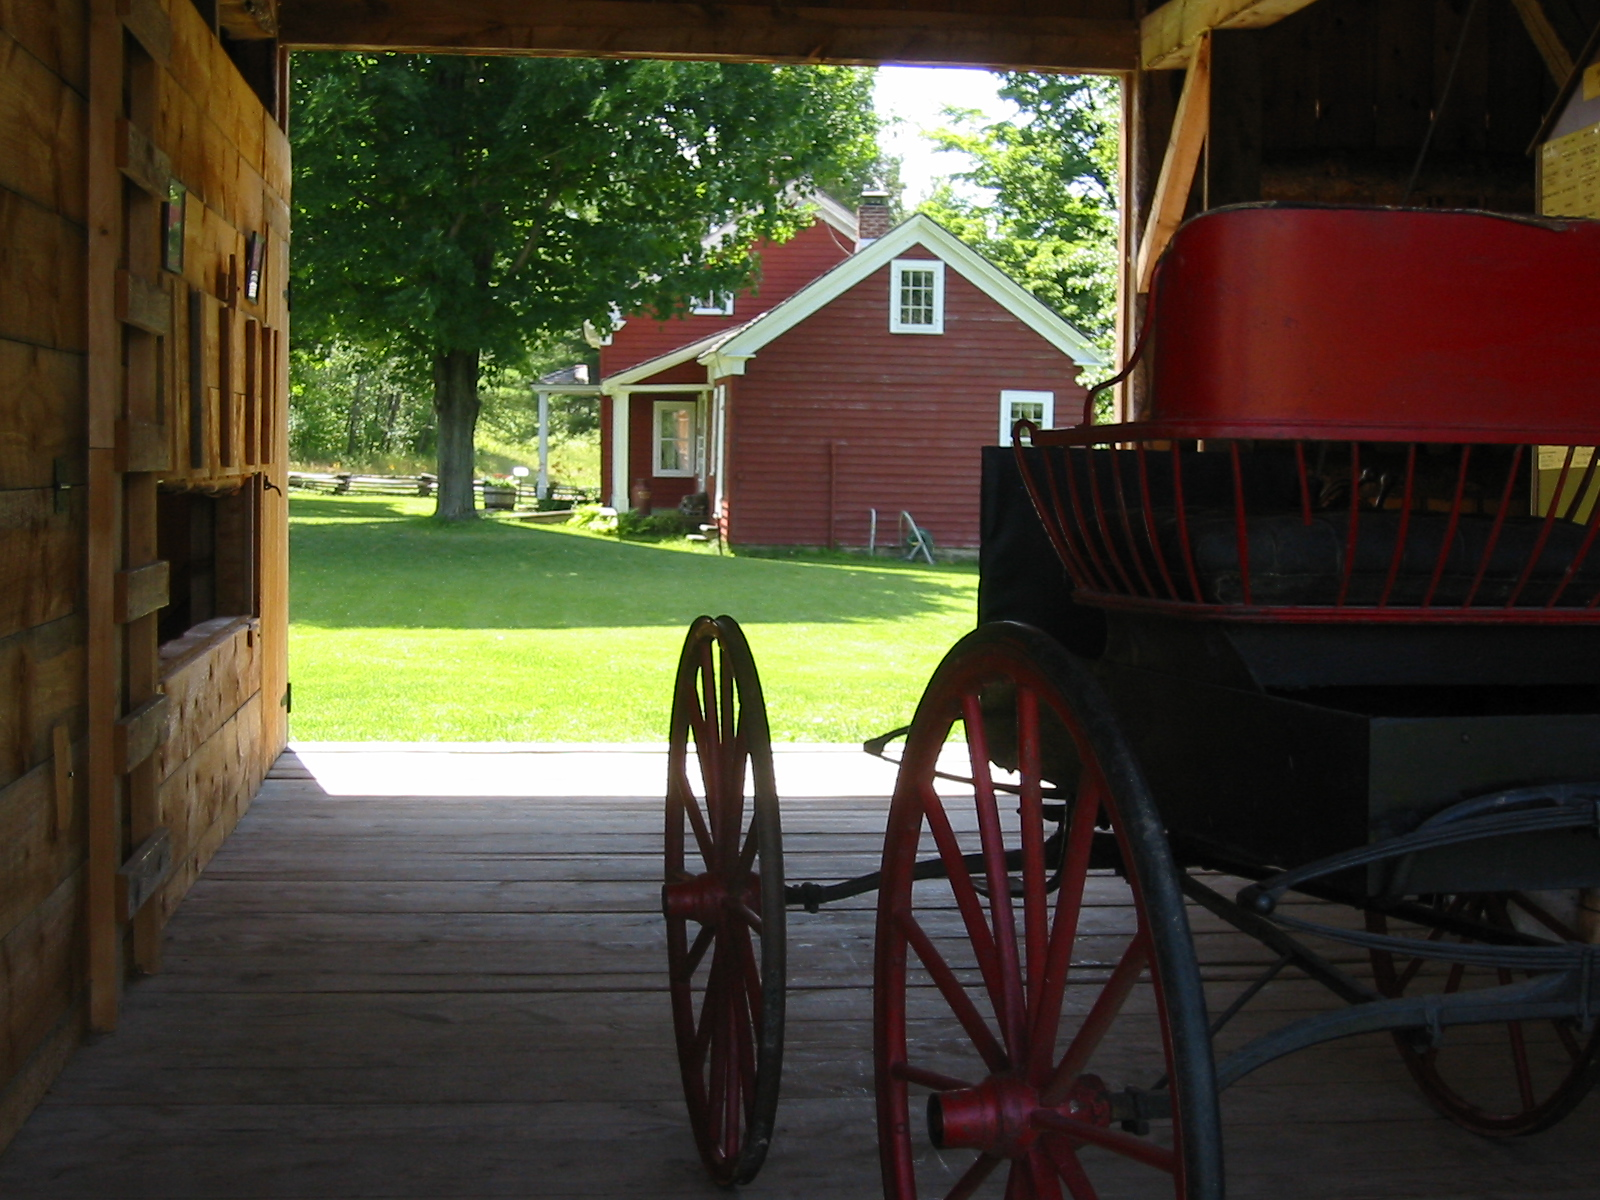 Looking at the farmhouse from inside the buggy house at the Almanzo Wilder Farm in Malone, New York